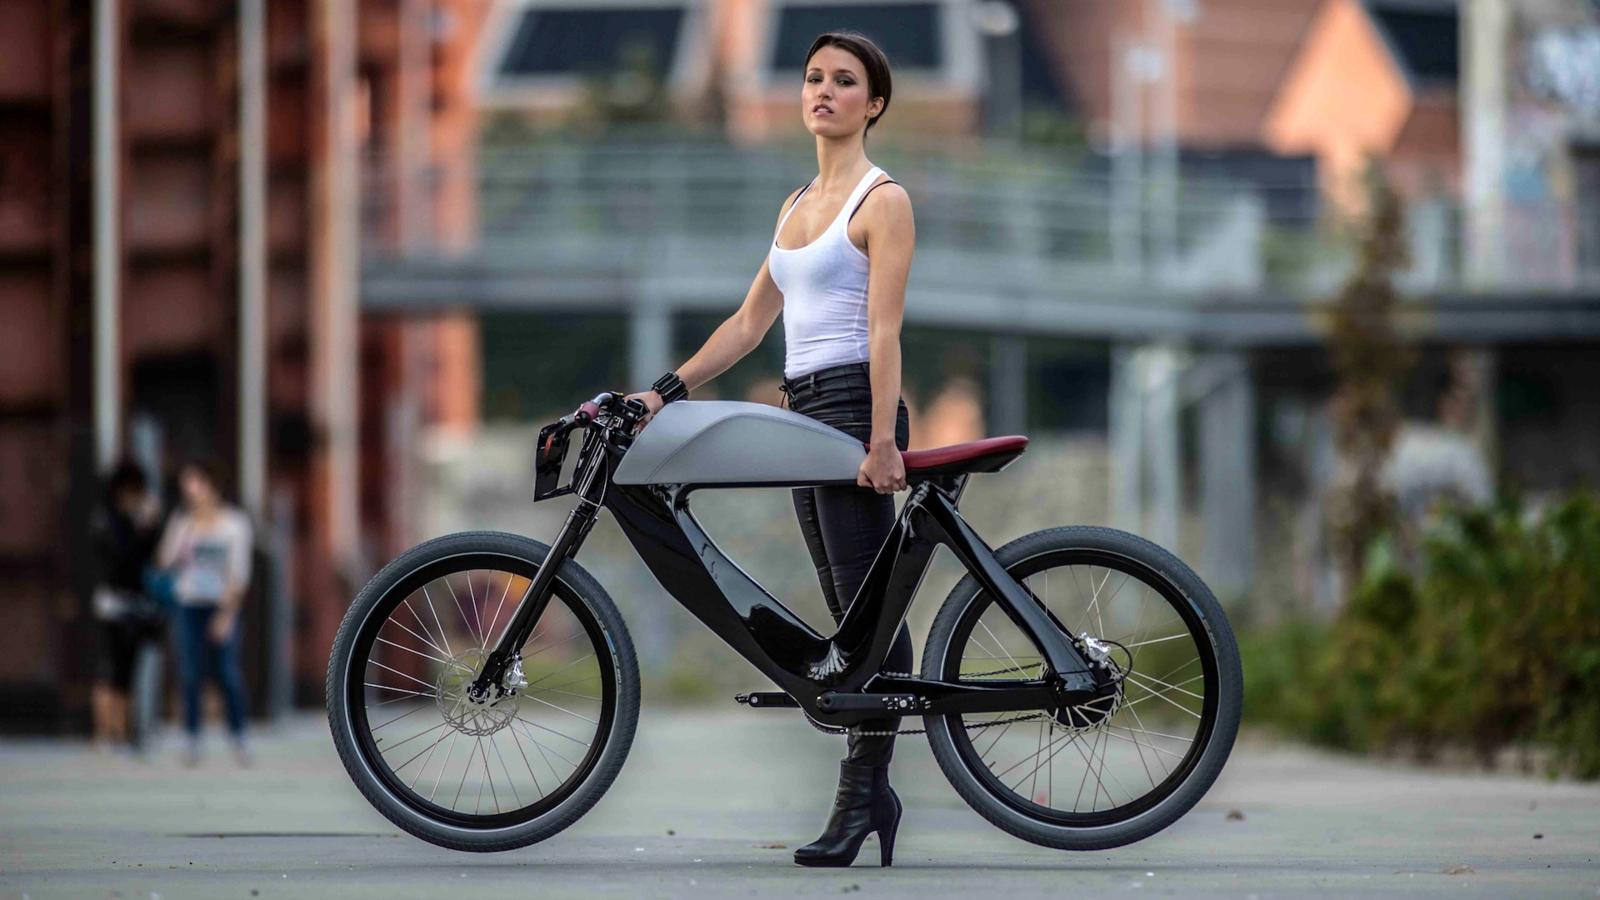 Exotic bike: SPA Bicicletto